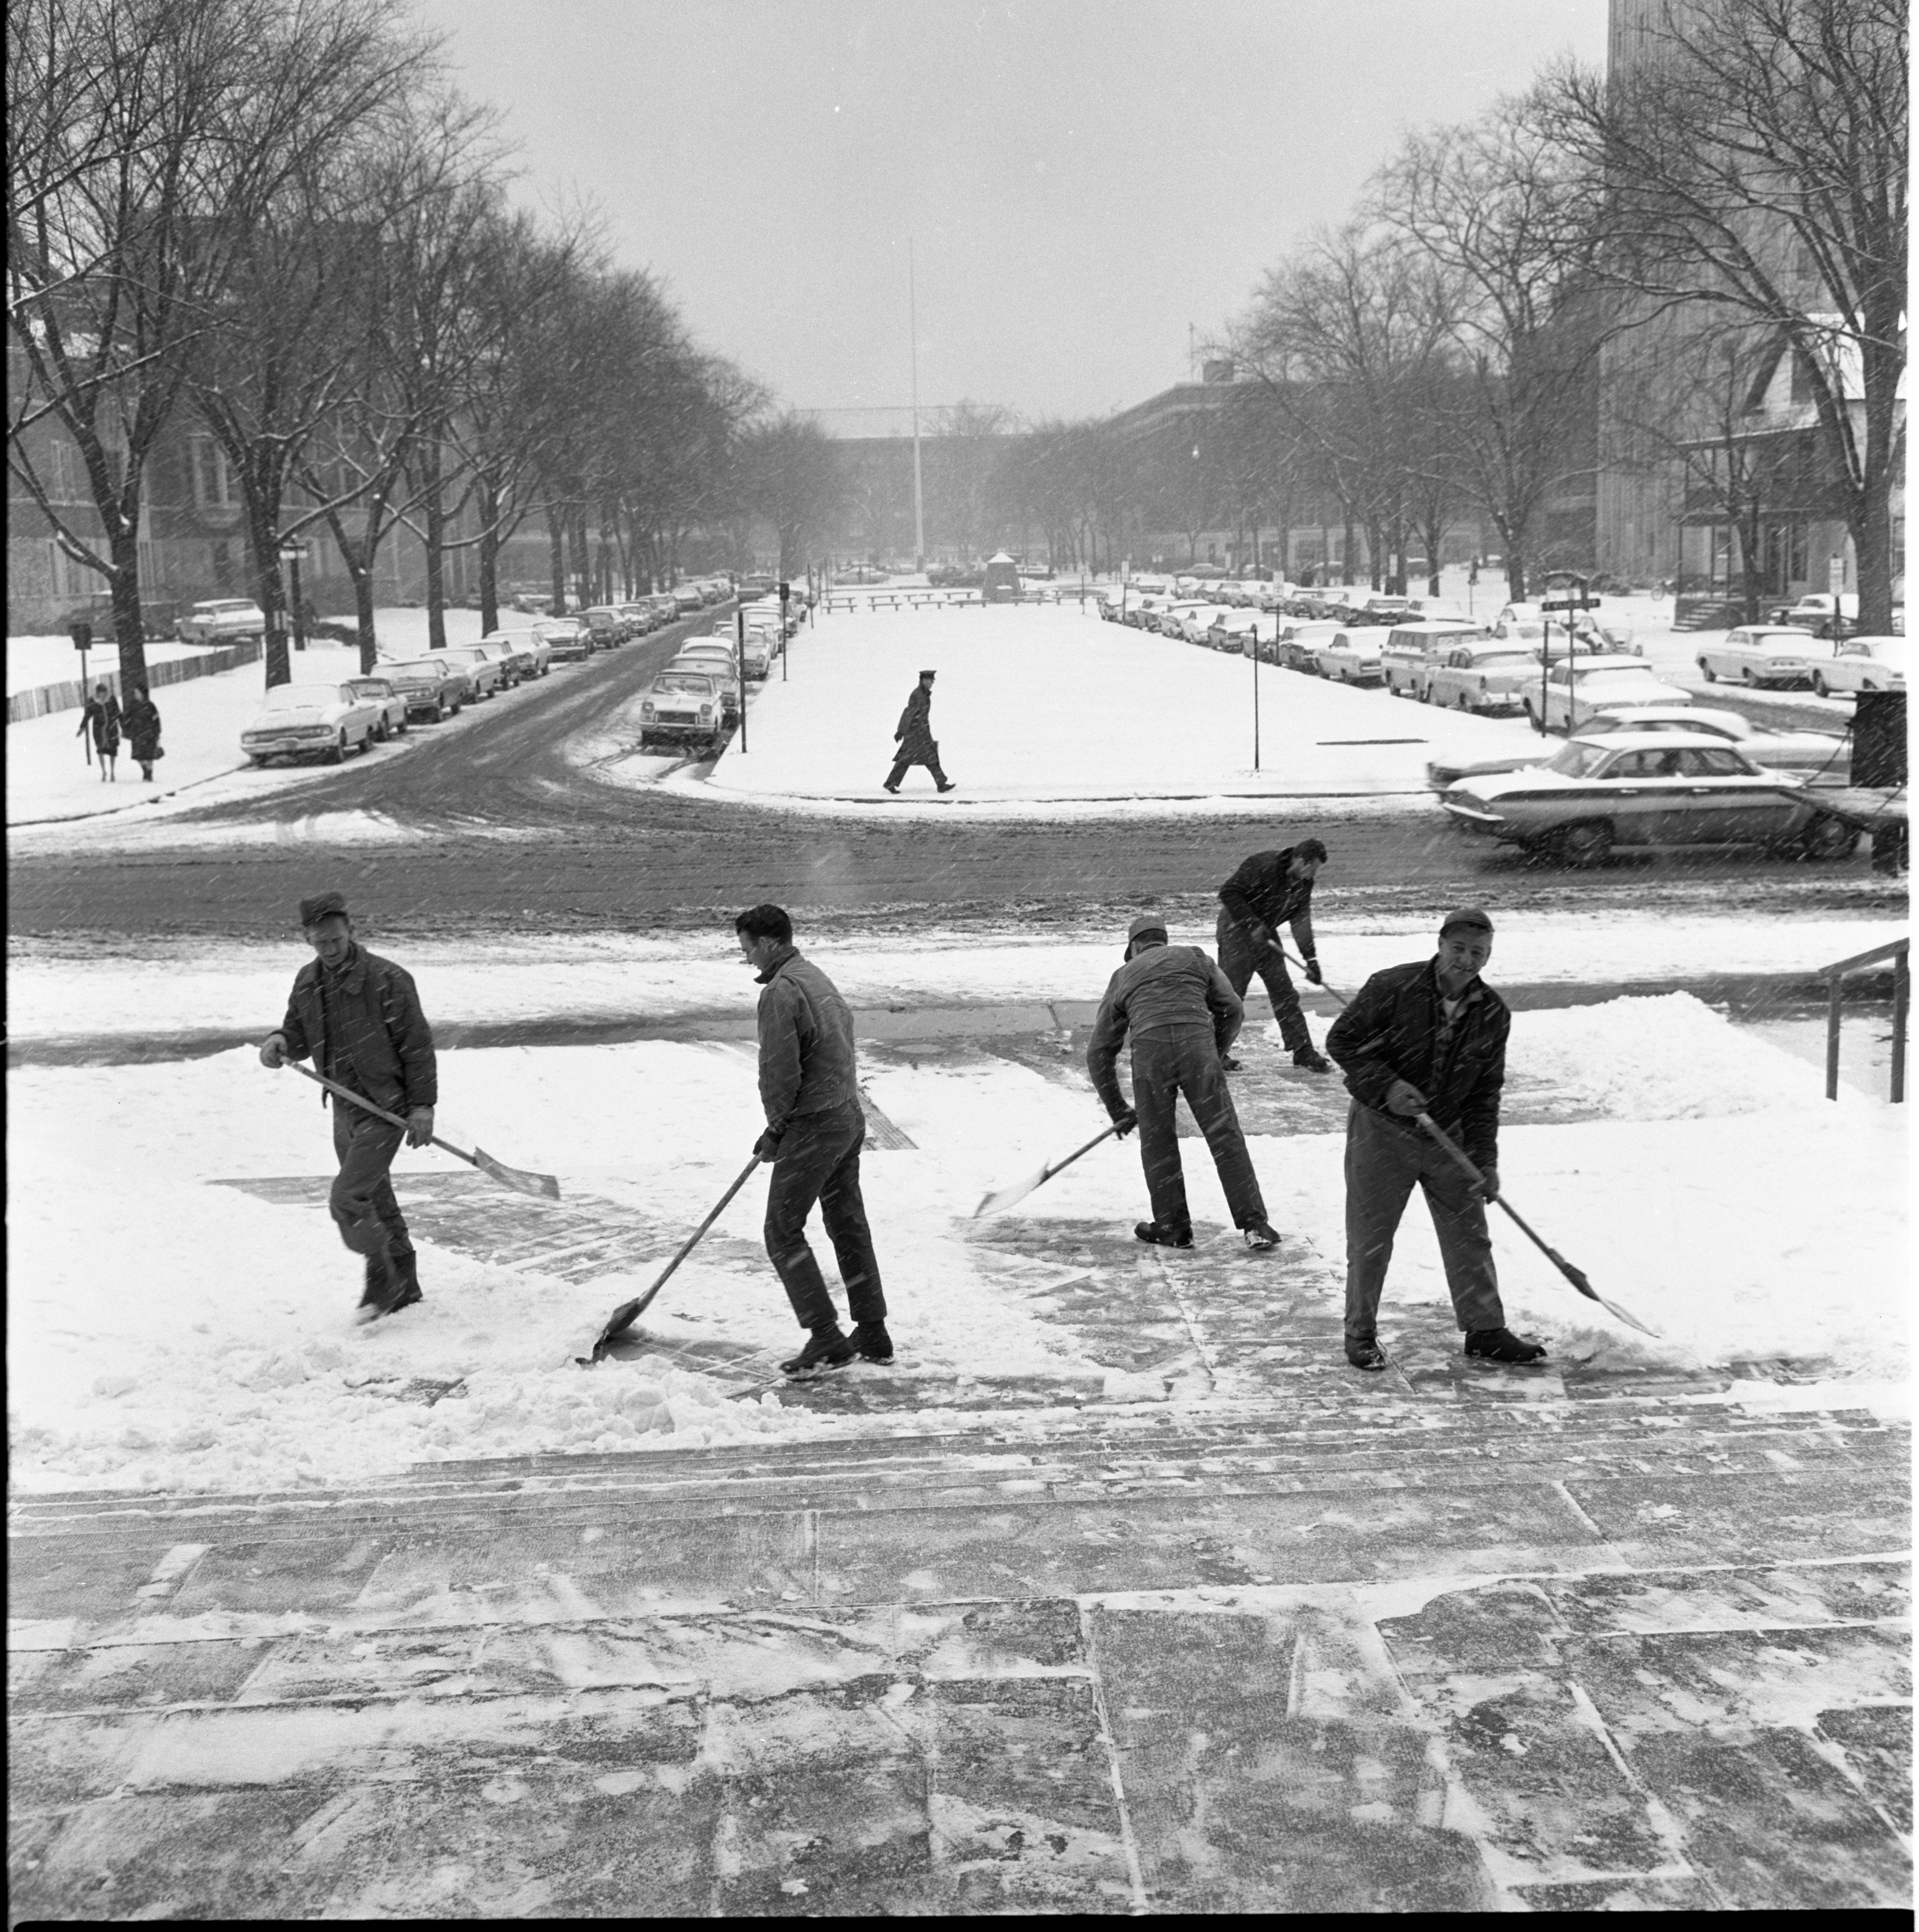 University of Michigan Employees Clear Snowy Campus Sidewalks, January 1966 image